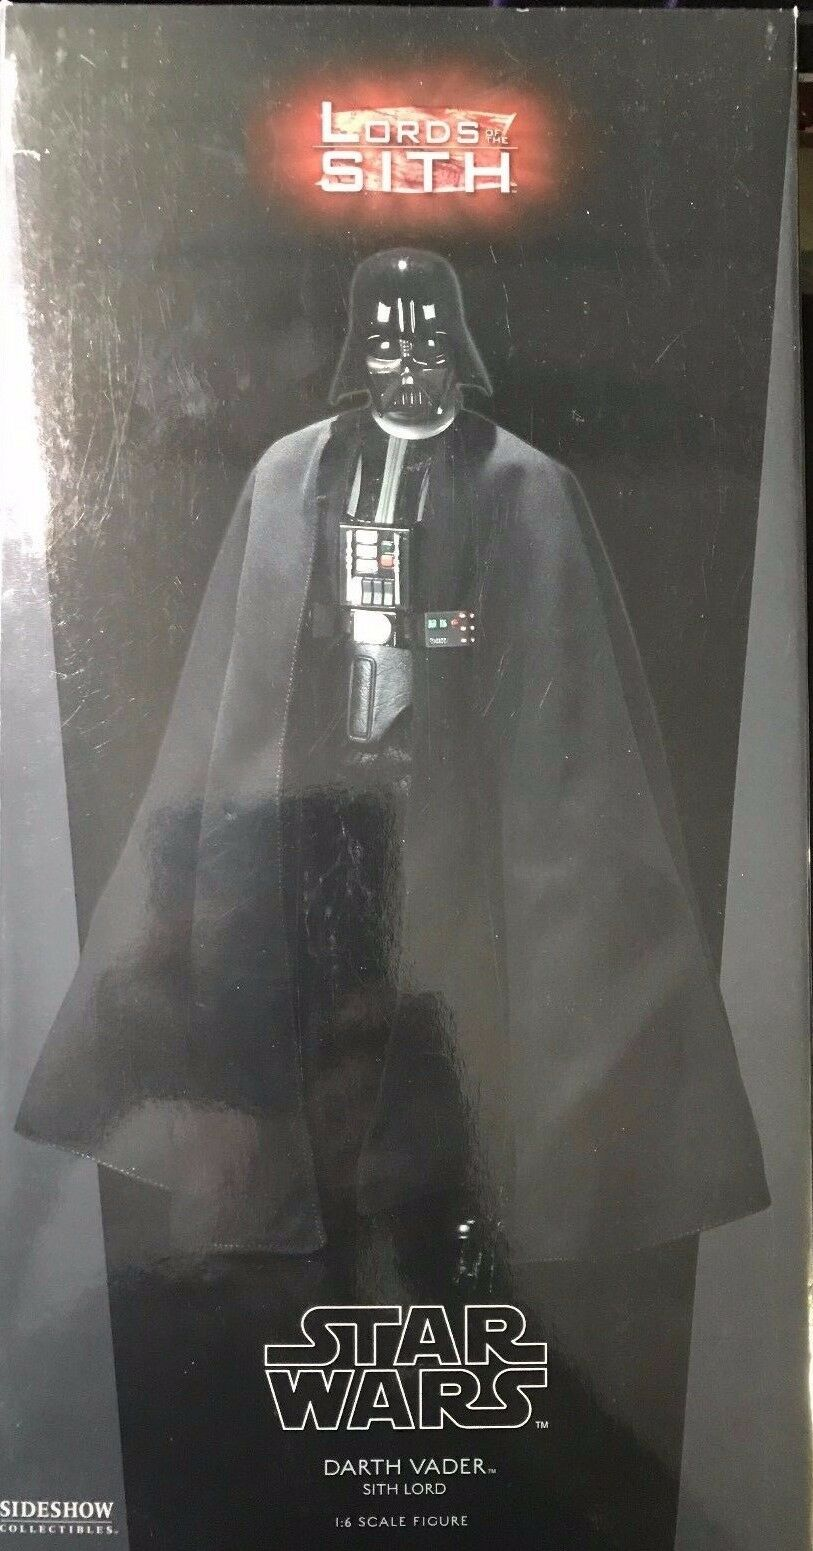 Darth Vader Sideshow Collectibles Estrella Wars Sith Lord   2129